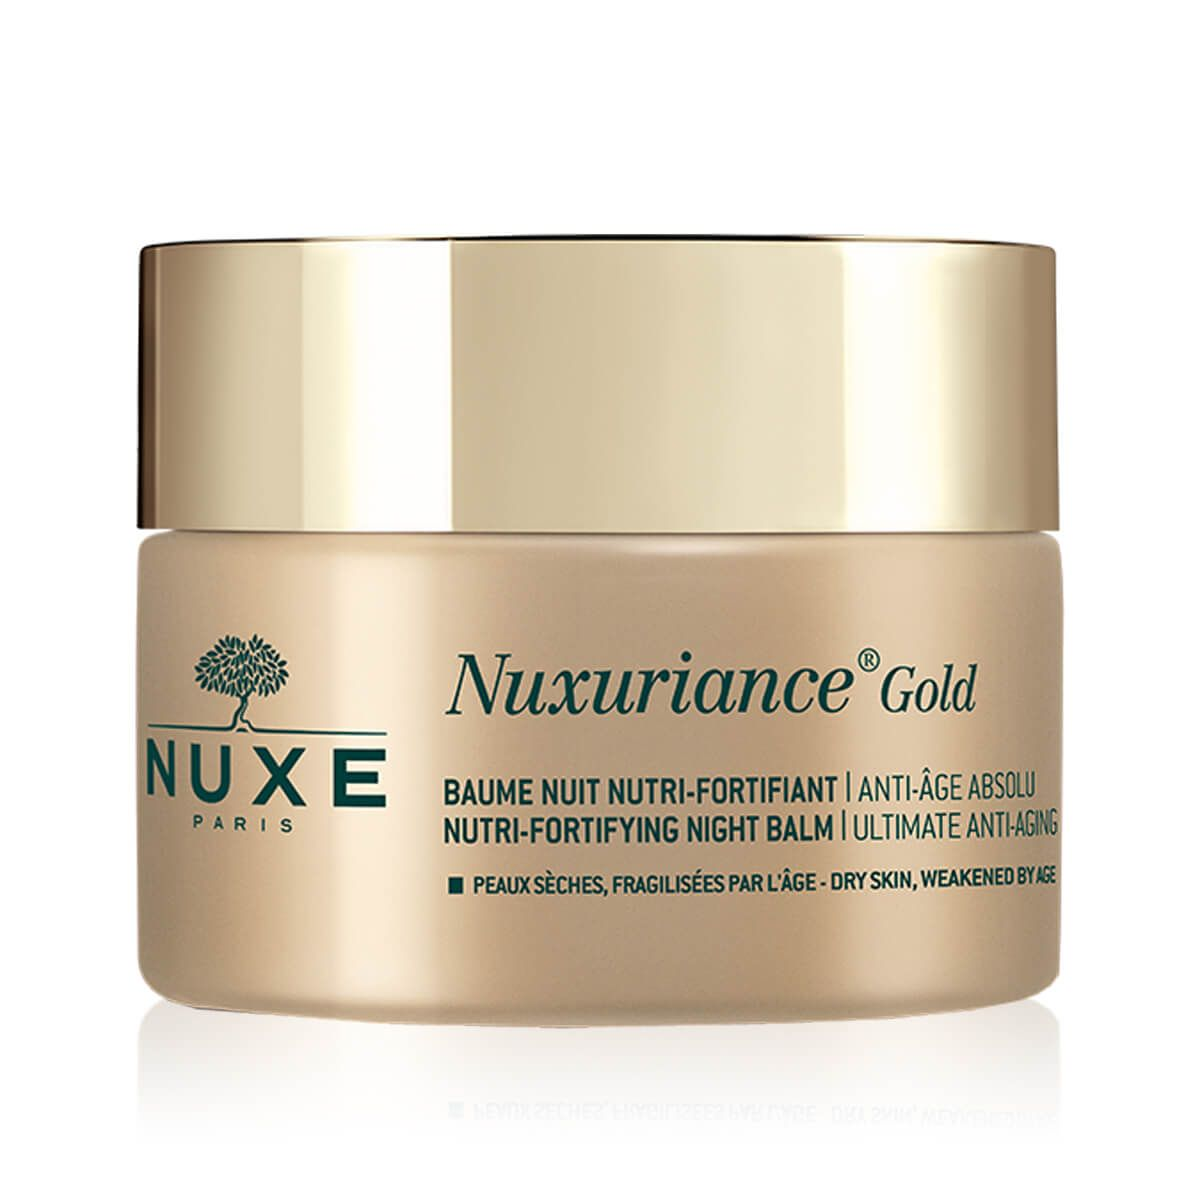 Nuxe Nuxuriance Gold - Crema notte Nutri-Fortificante anti età assoluto 50ml